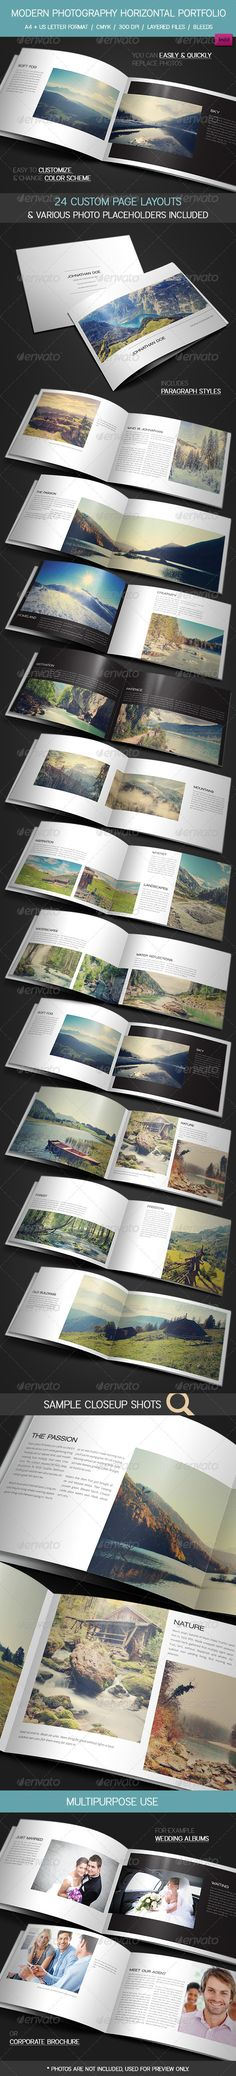 Modern Photography Portfolio, Wedding Album is a 24 paged A4 + US Letter brochure / portfolio made for photographers, graphic designers, artists and other who want to show their work in different, creative way. Great for making wedding albums, corporate brochures, product showcase etc.